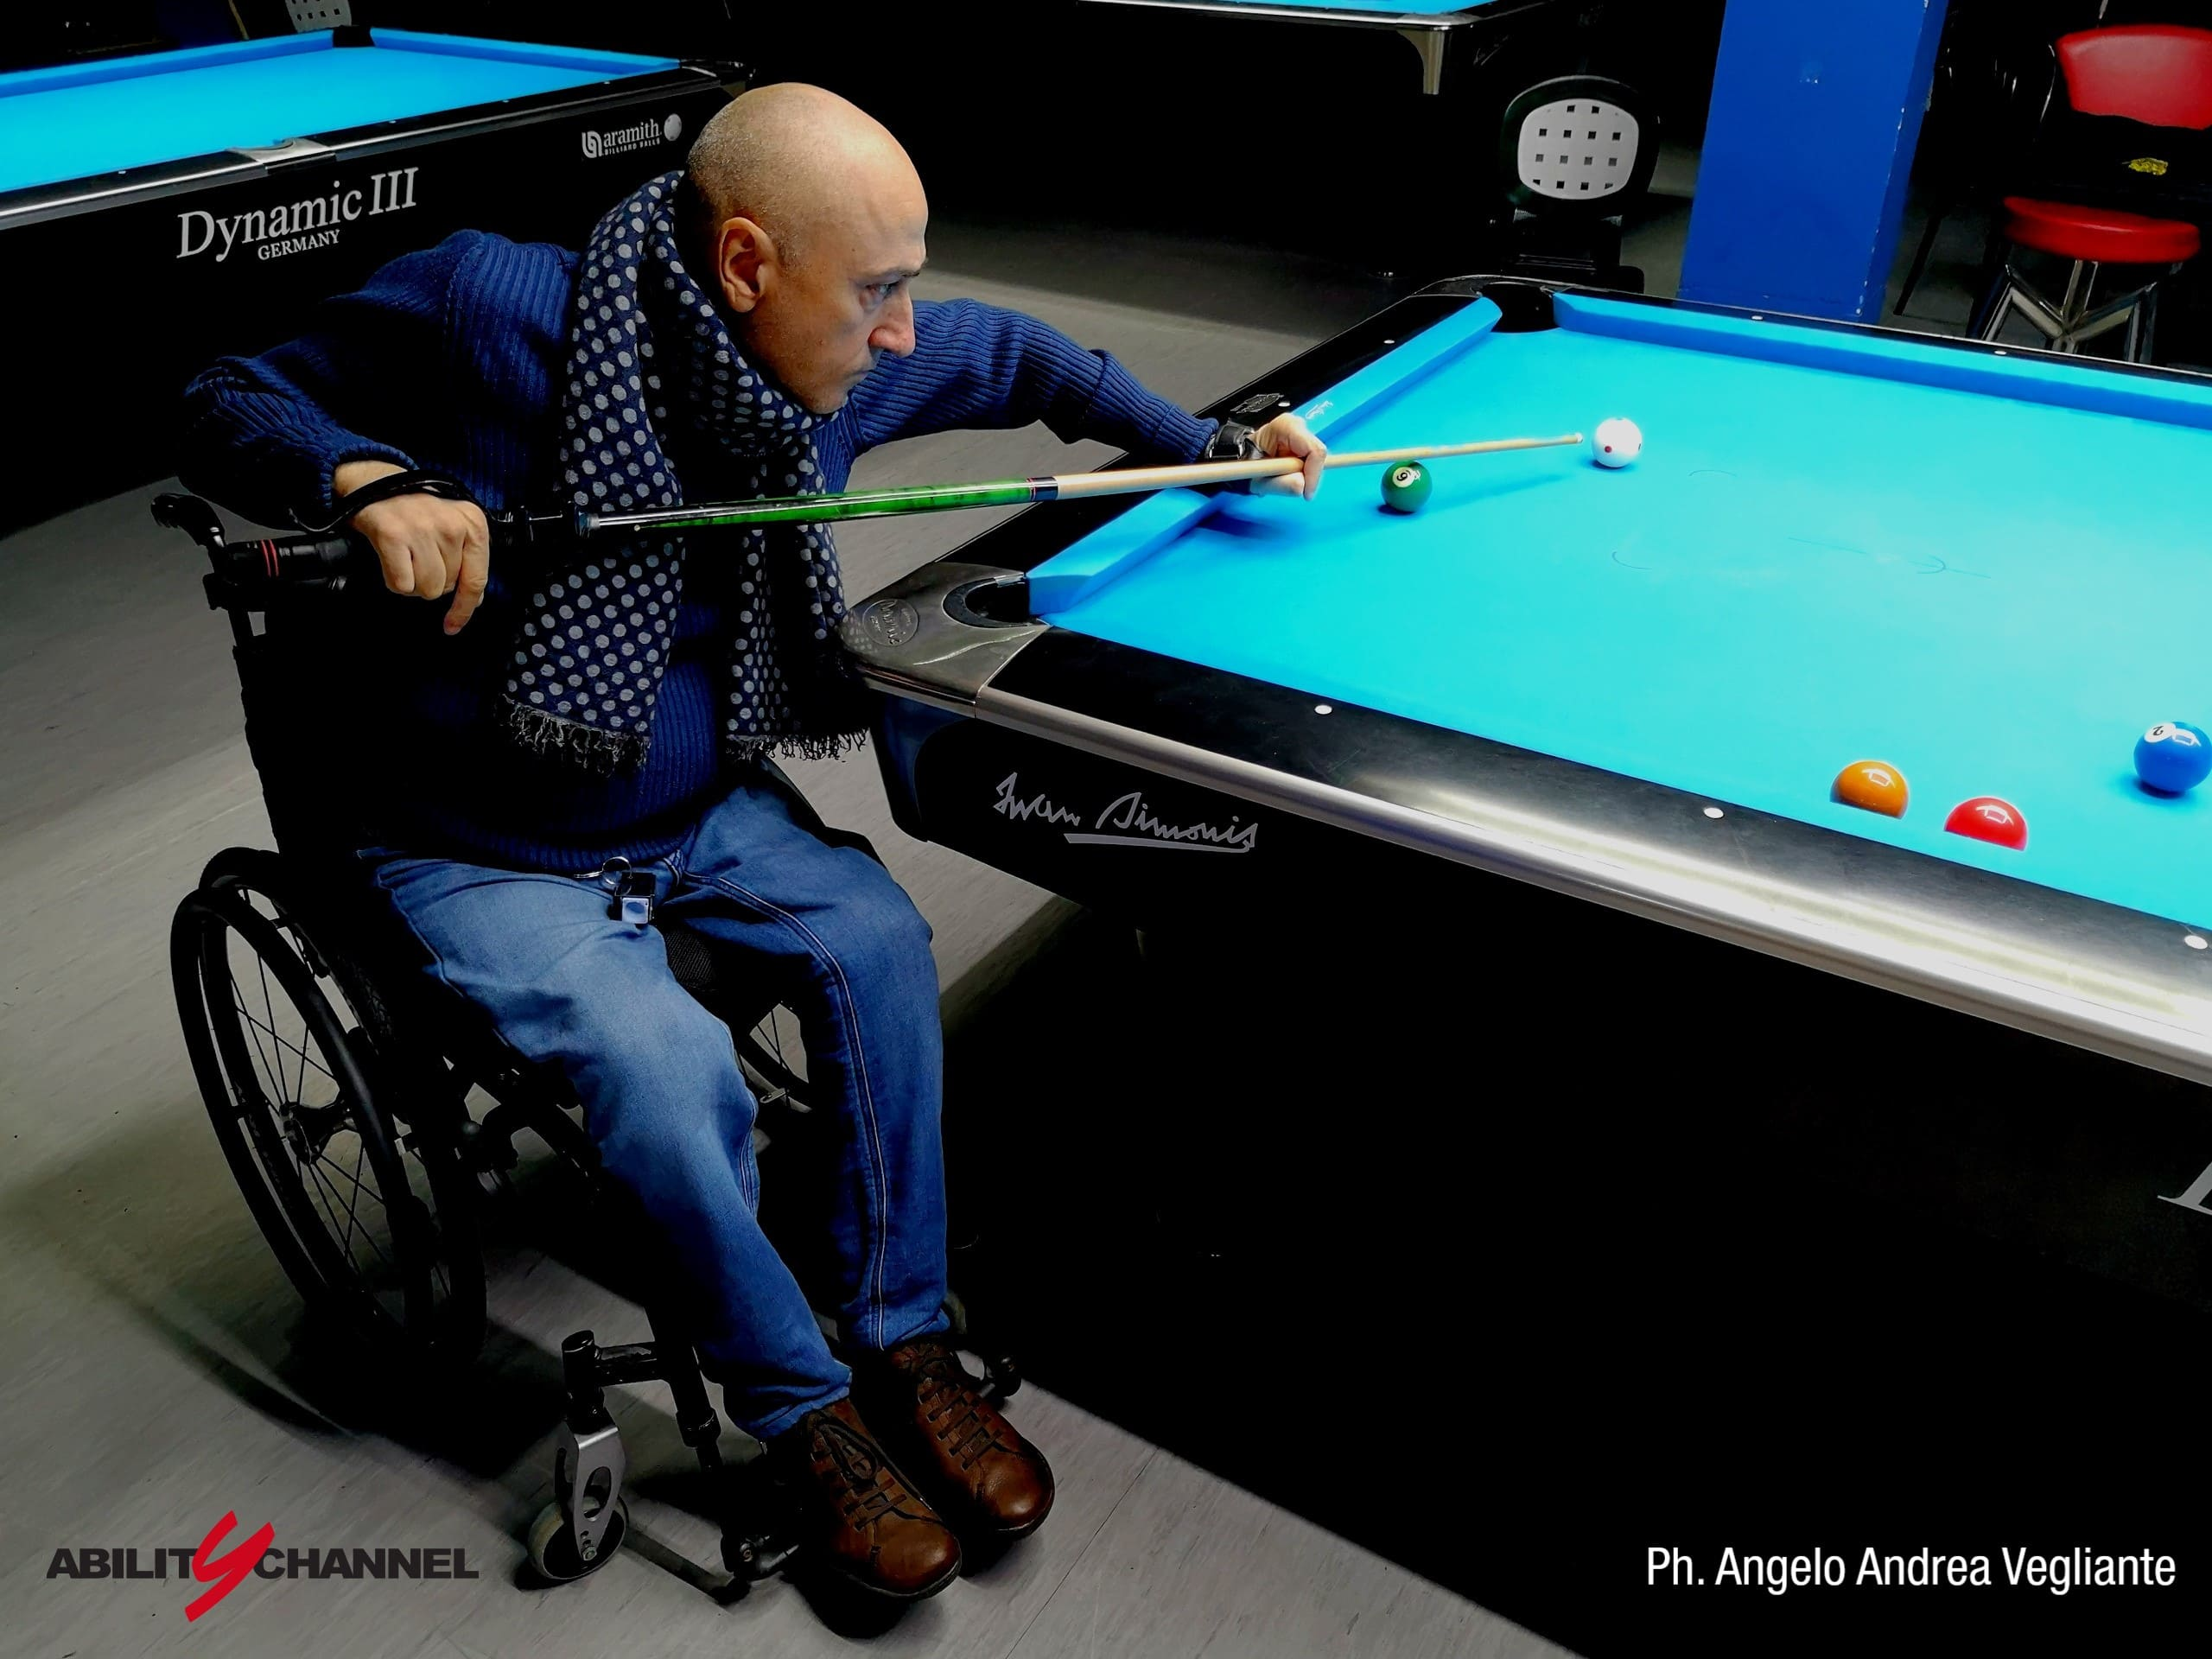 Wheelchair Billiards Ability Channel Luca Bucchi biliardino in carrozzina